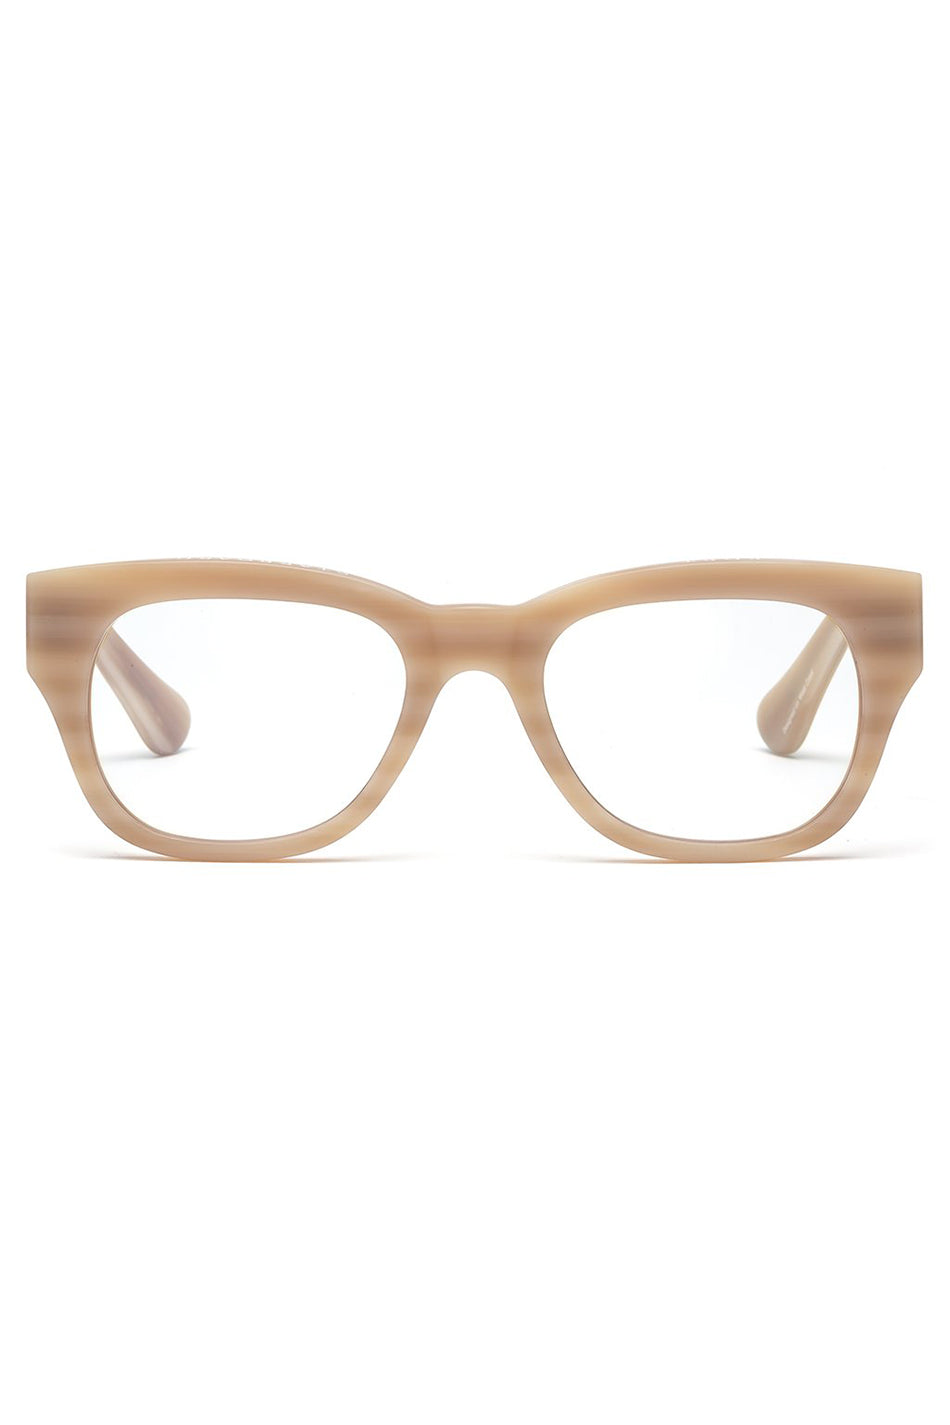 CADDIS - MIKLOS reader glasses, matte bone